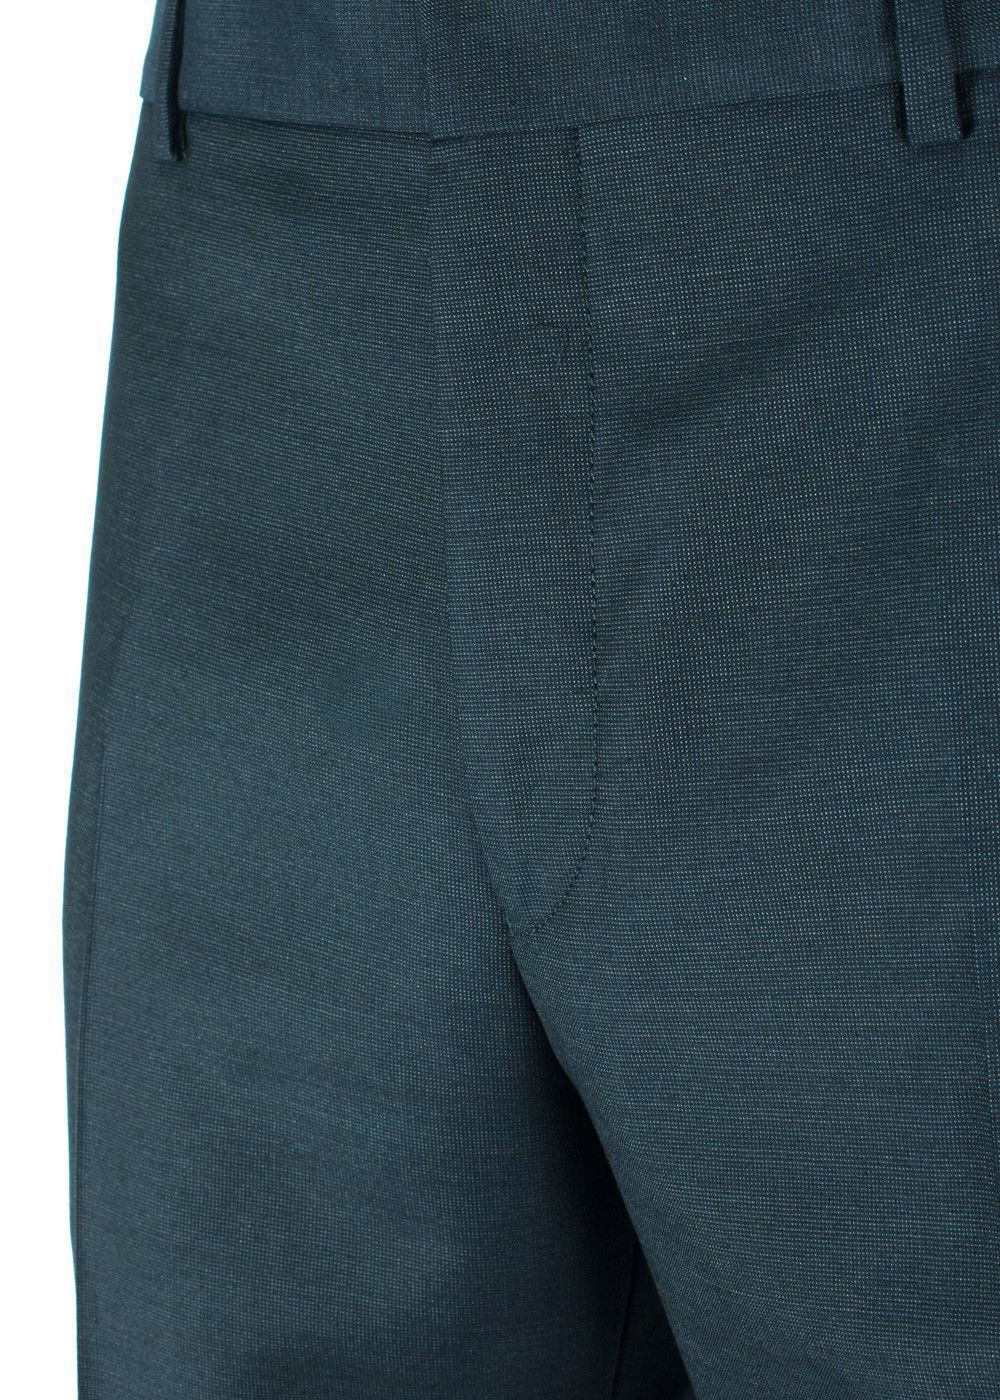 New~Givenchy Men's 100% Wool Classic Navy Trousers Size IT60~RTL$450~3XL~NWT